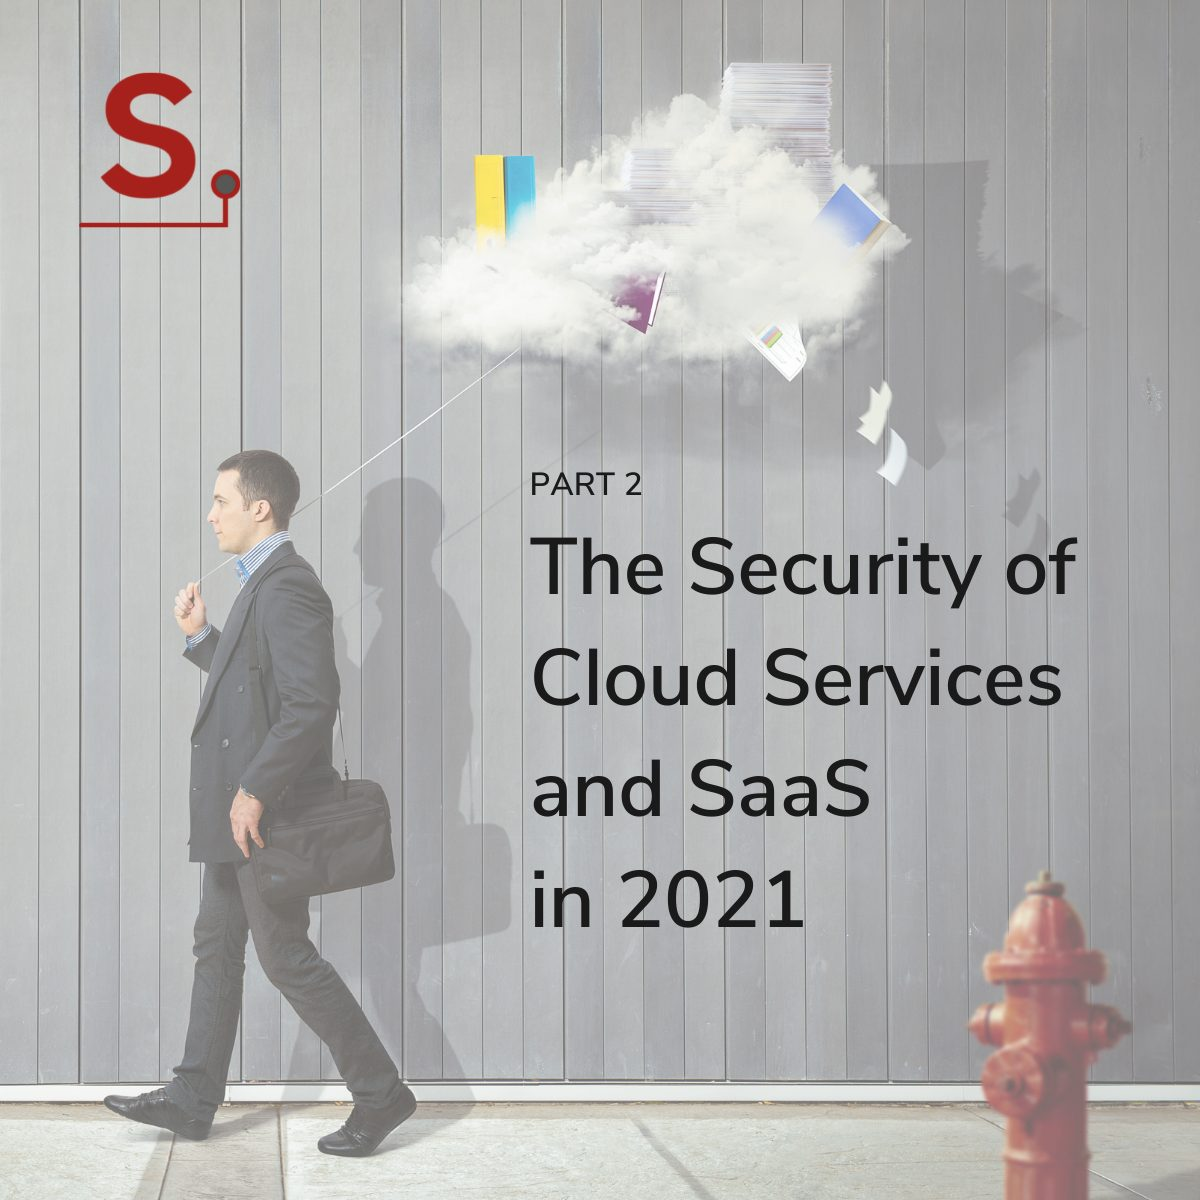 The Security of Cloud Services and SaaS in 2021 – Part 2